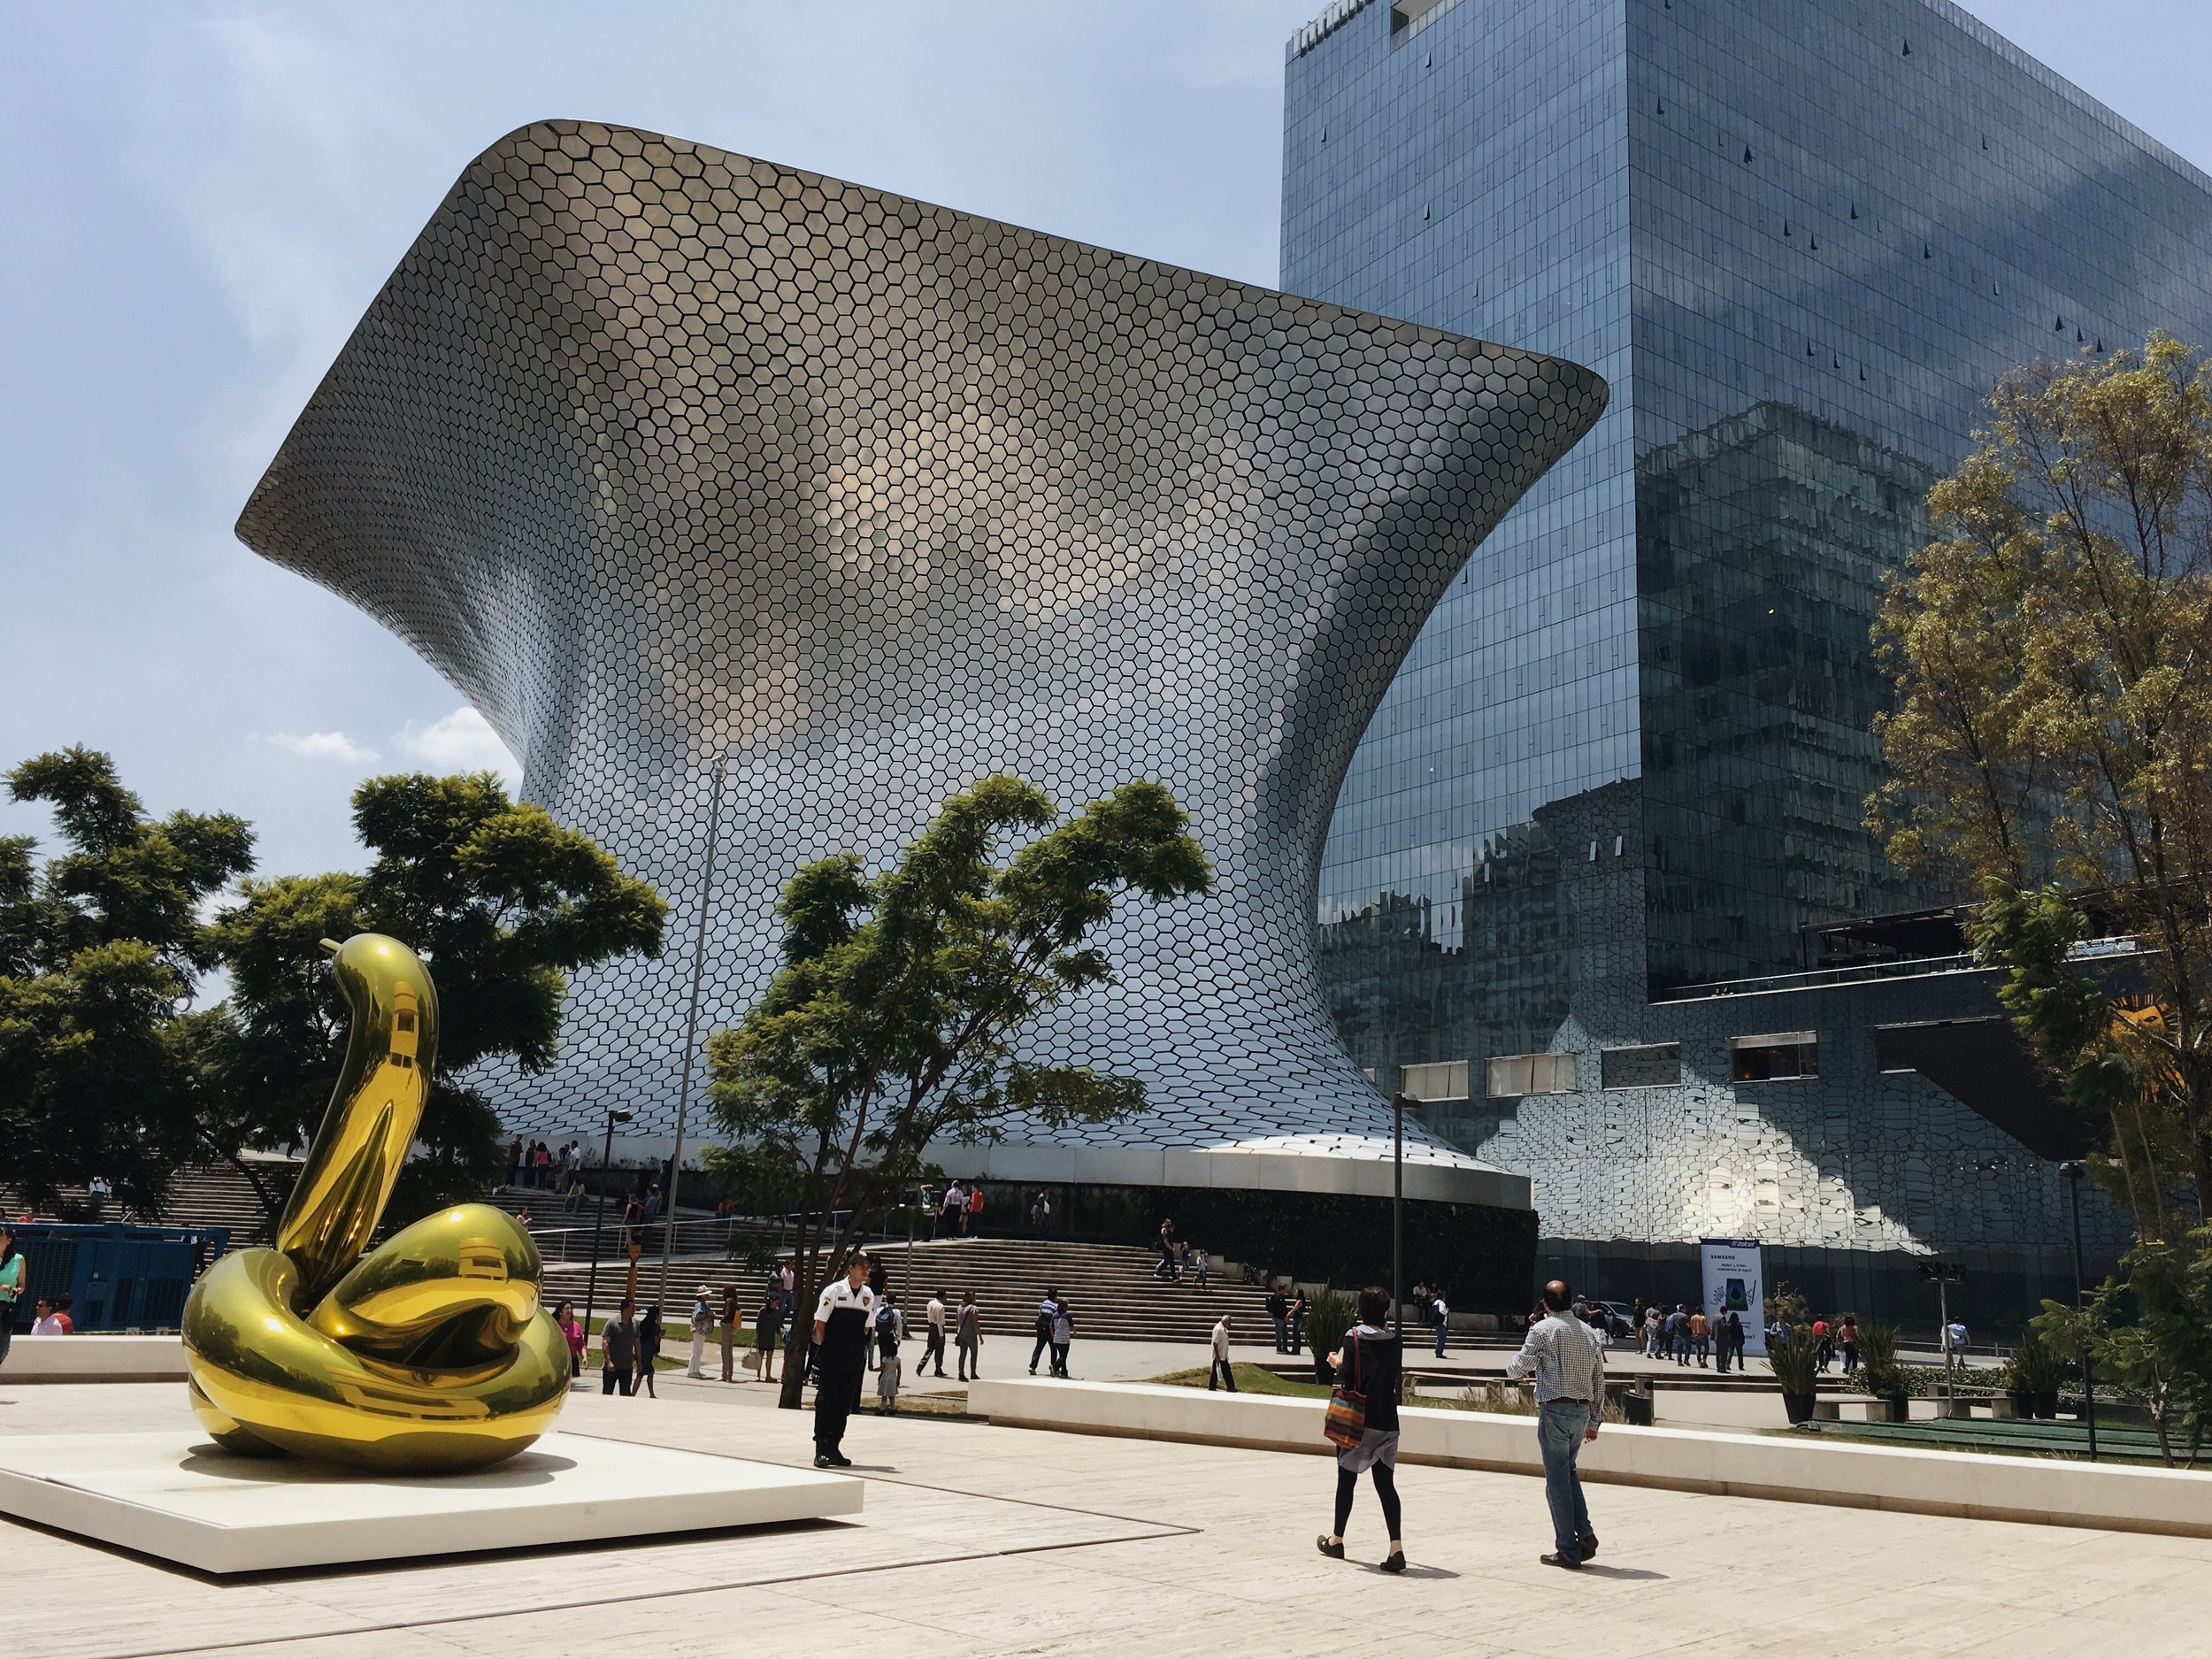 Museo Soumaya and Jeff Koons sculpture belonging to Museo Jumex